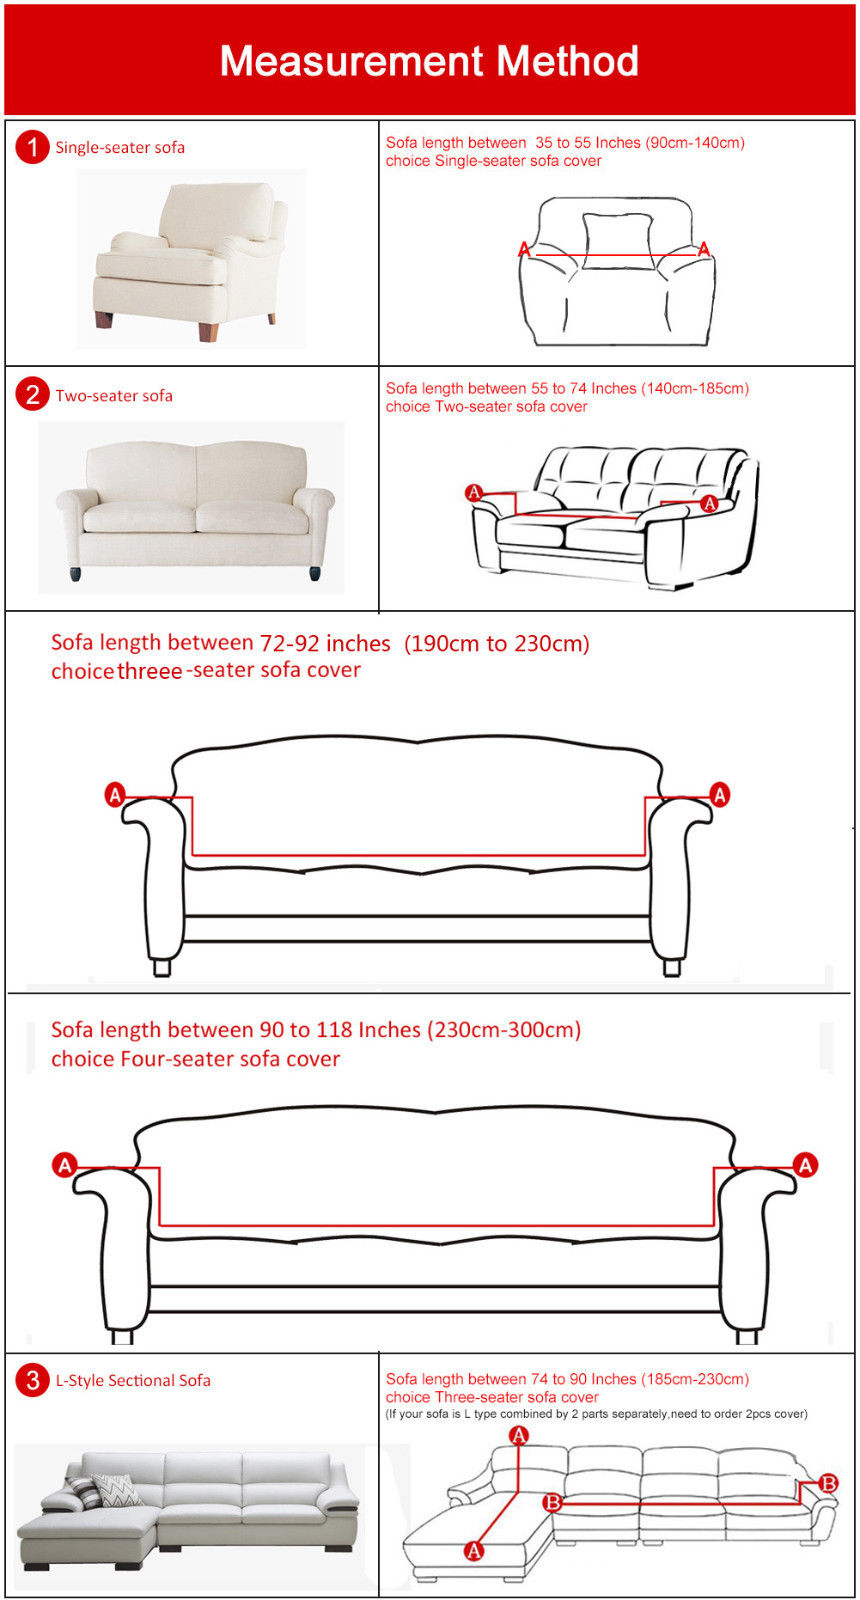 All Cover Sectional Sofa L Shape Slipcover Elastic Washable Couch 2seater 55 To 74inch 3 Seater 74 90 Inch Stretch